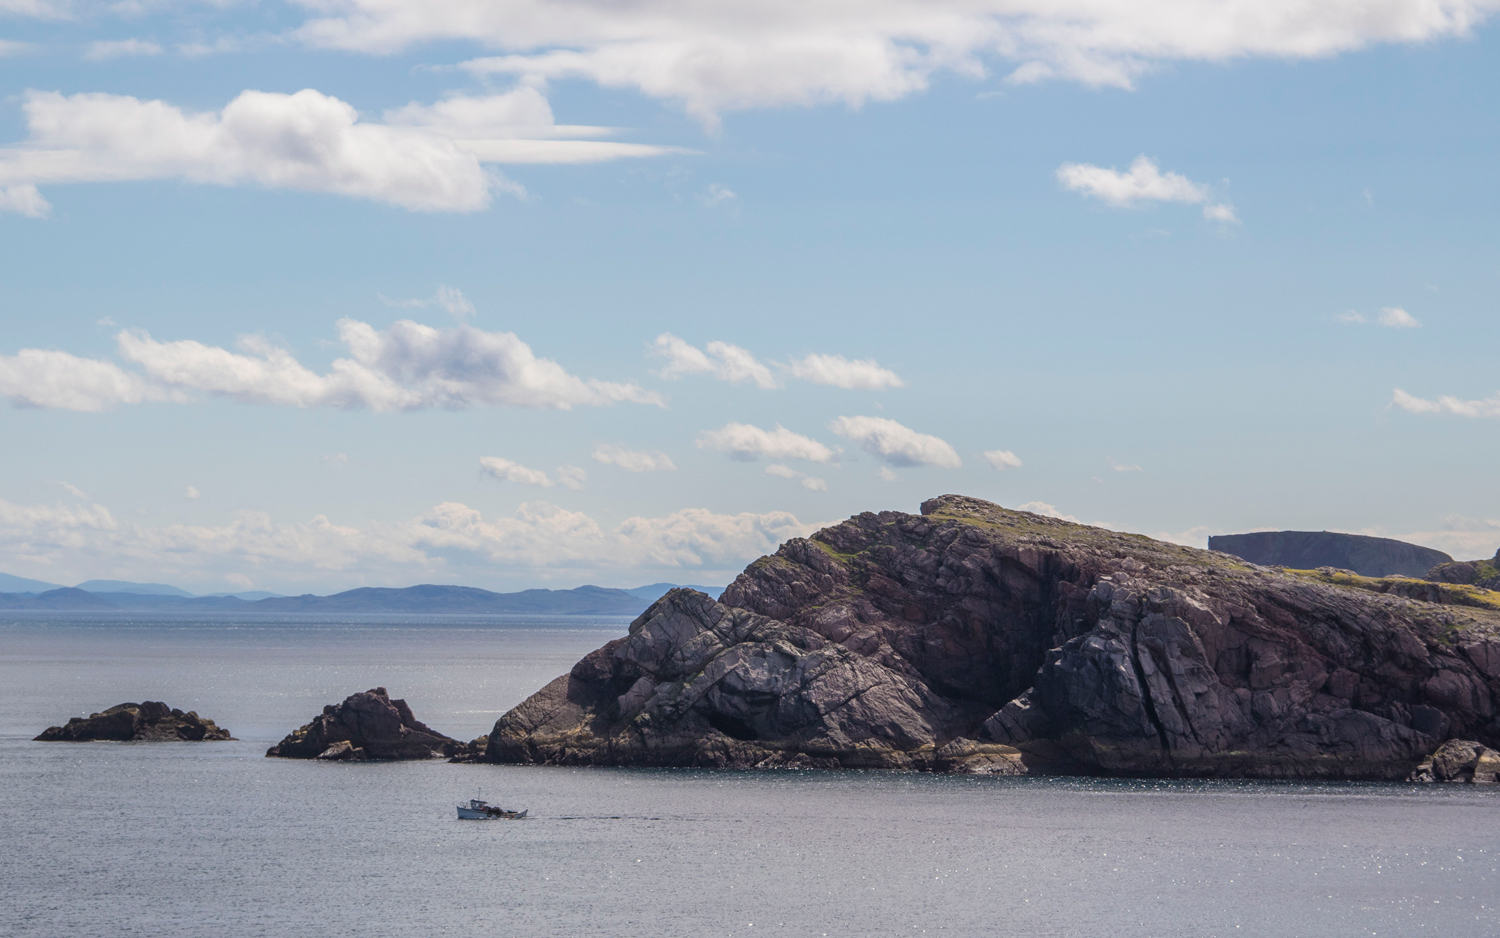 Mearnaid Rock by day. Mainland Donegal can be seen in the far distance.